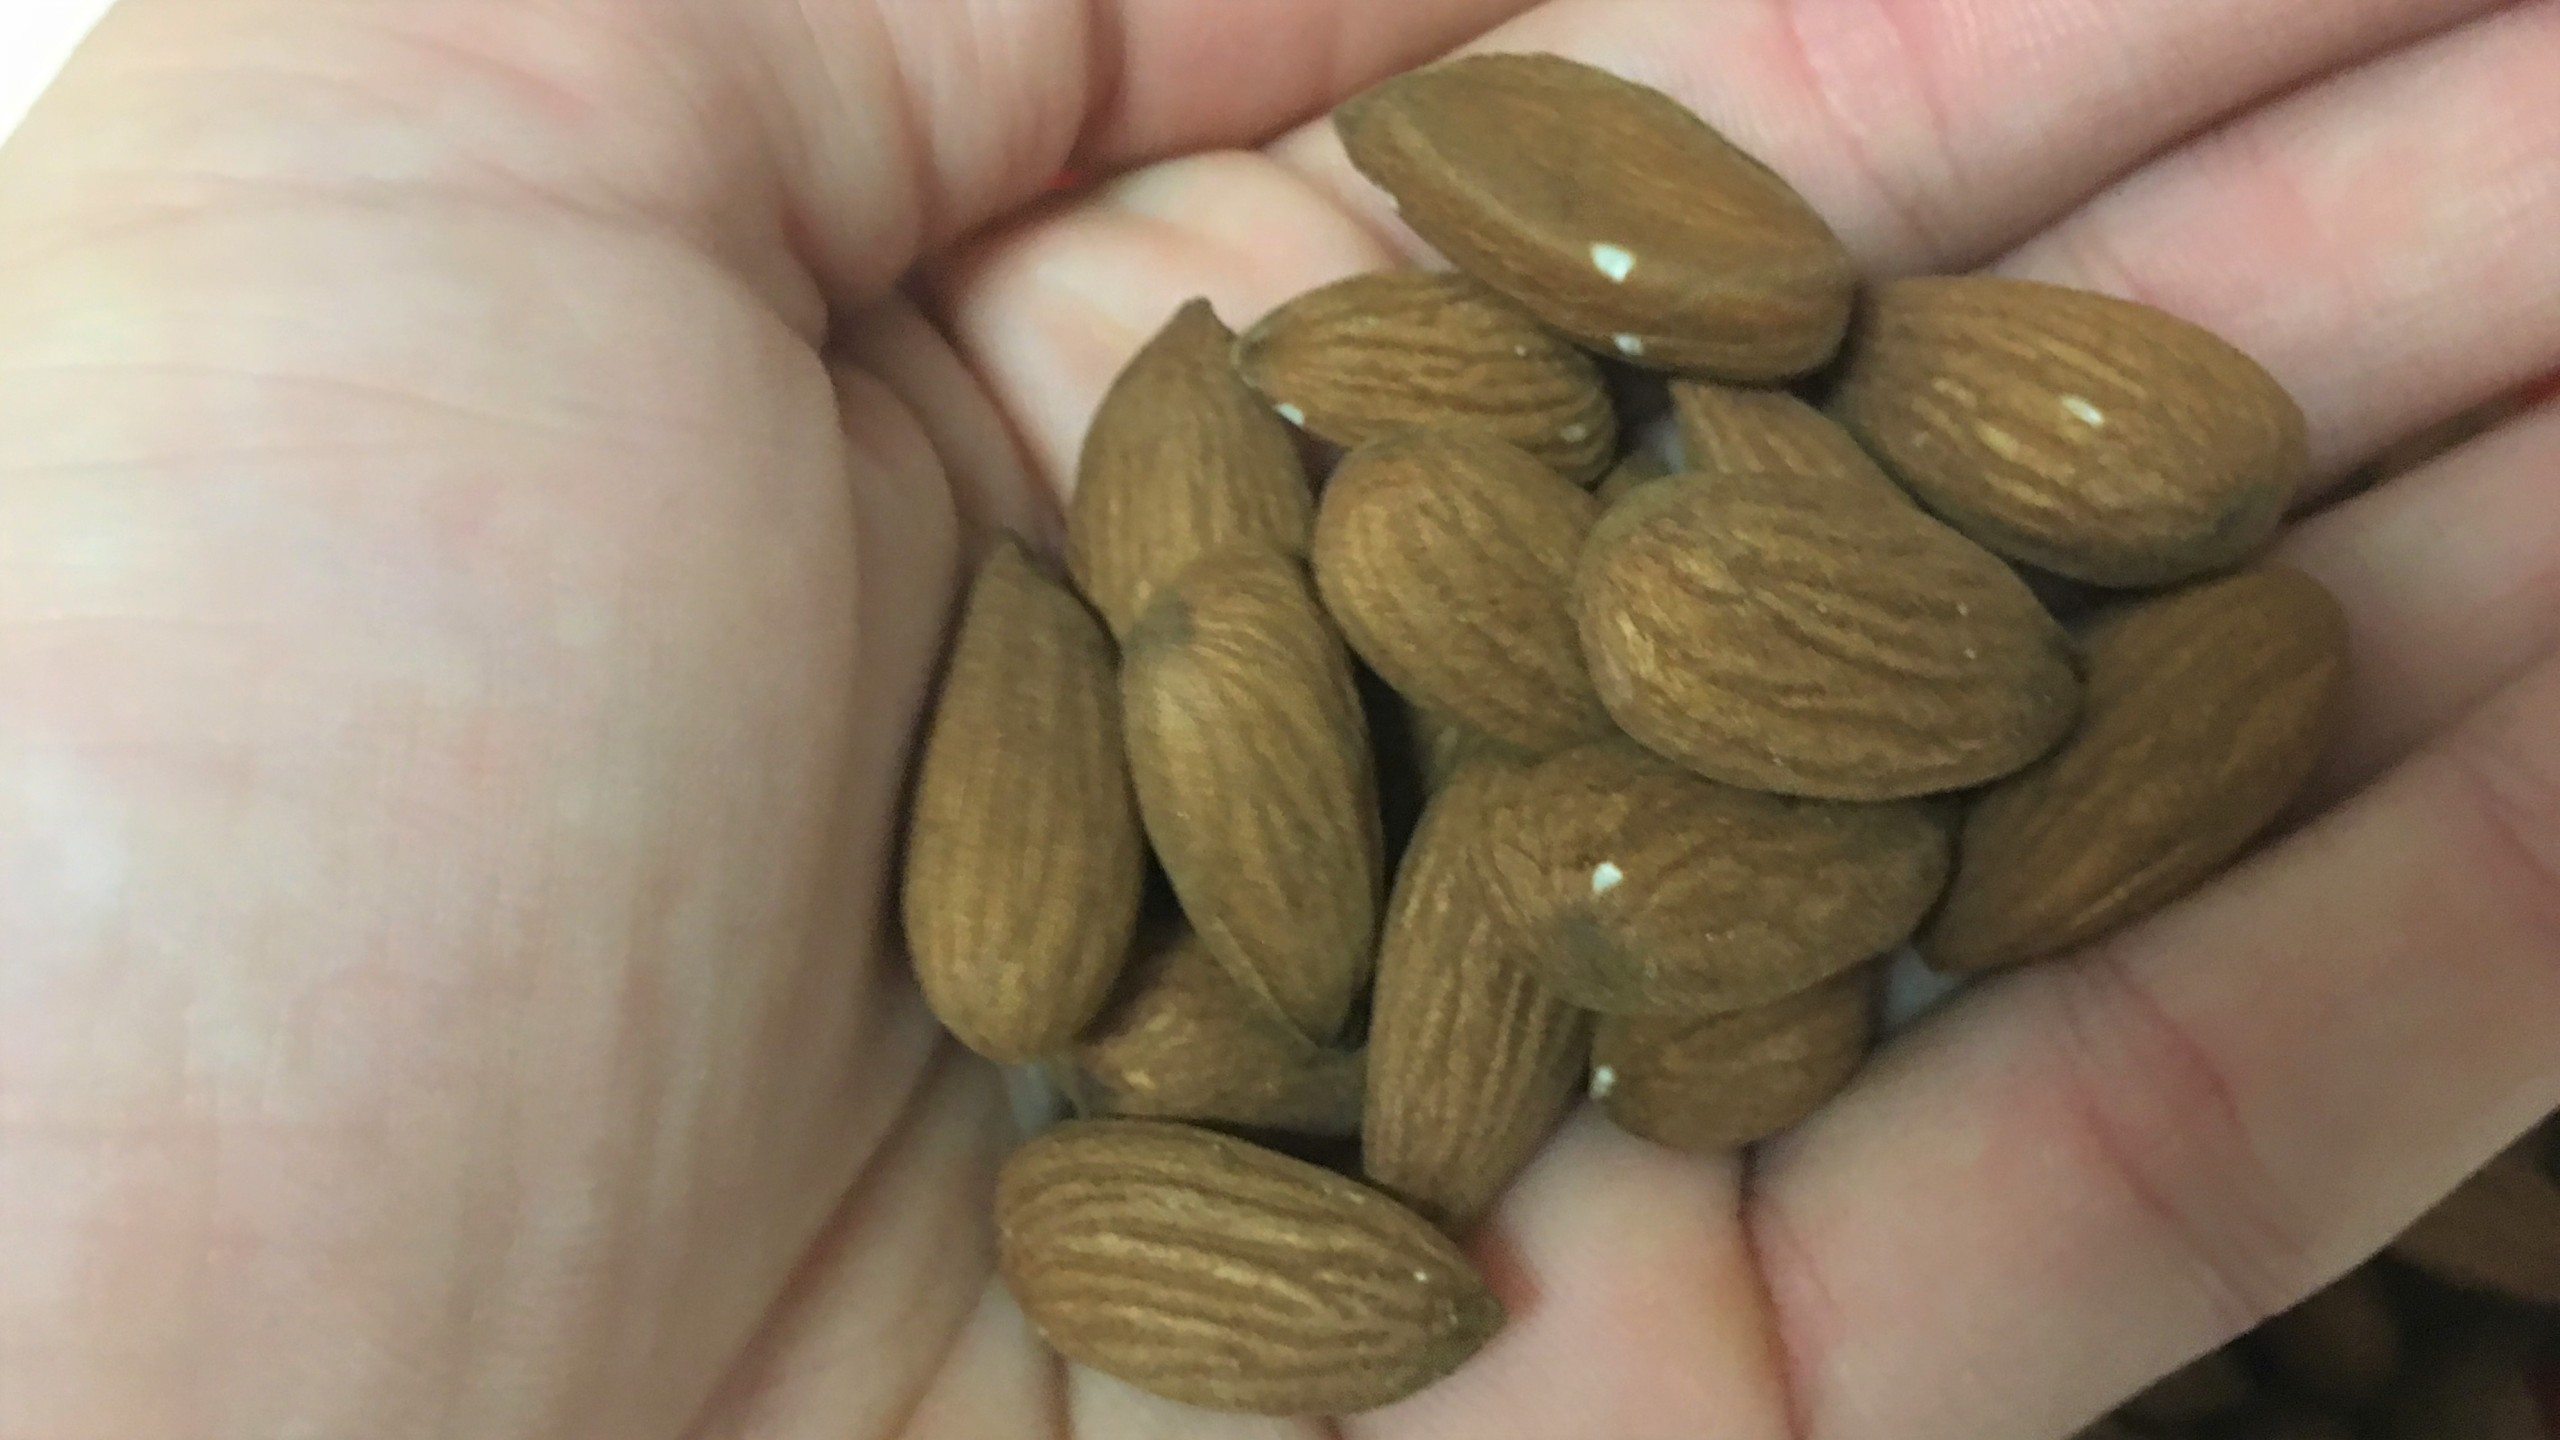 Almonds in hand_1550522140461.JPG.jpg